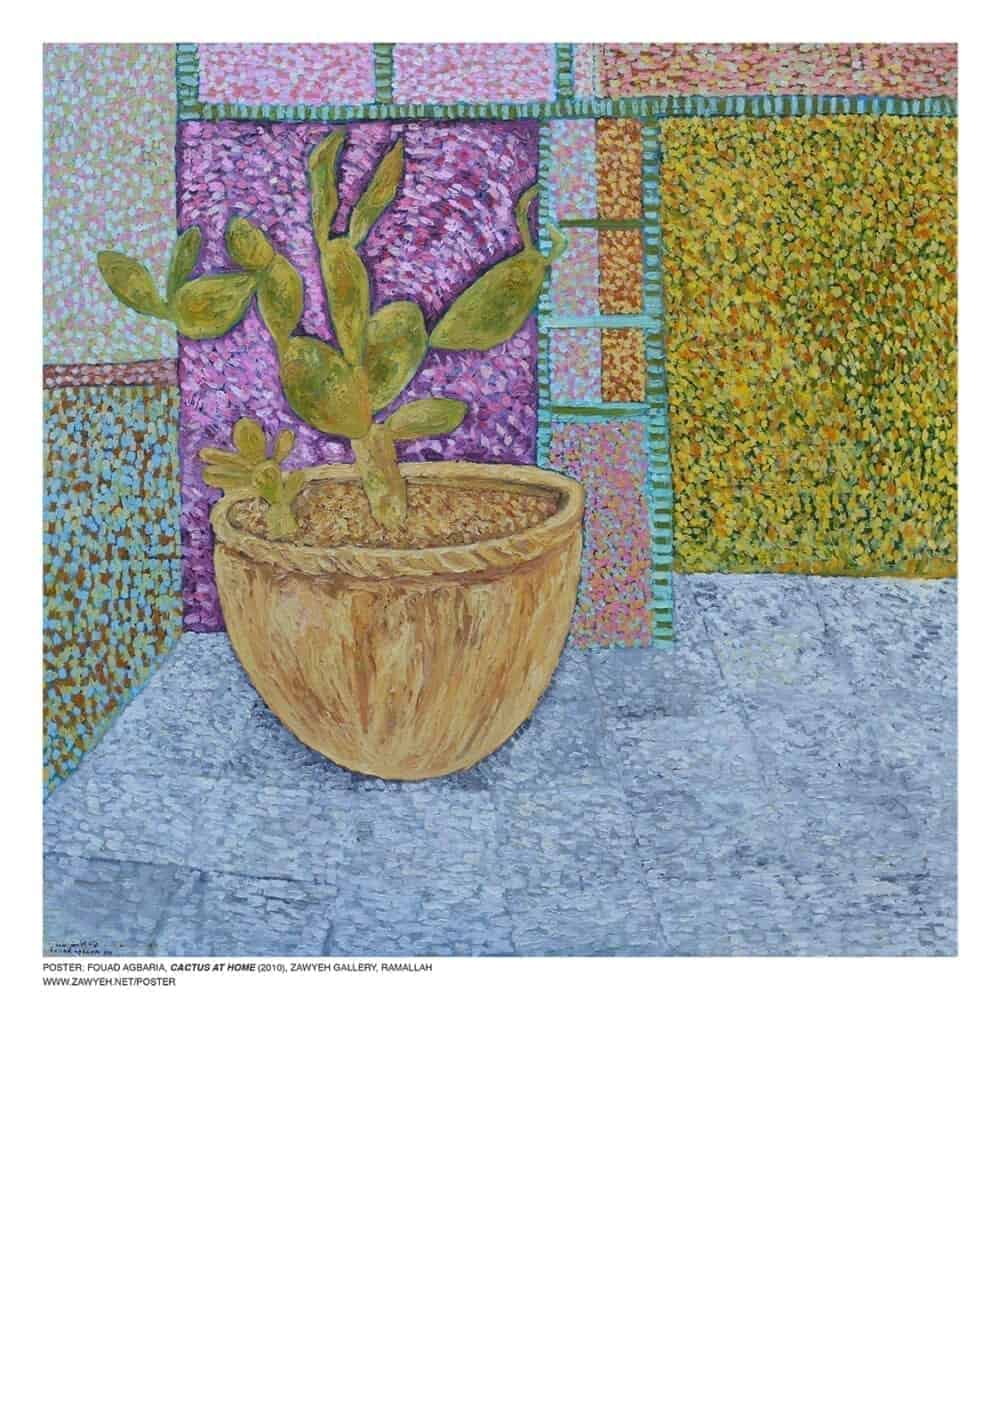 Cactus at Home by Fouad Agbaria